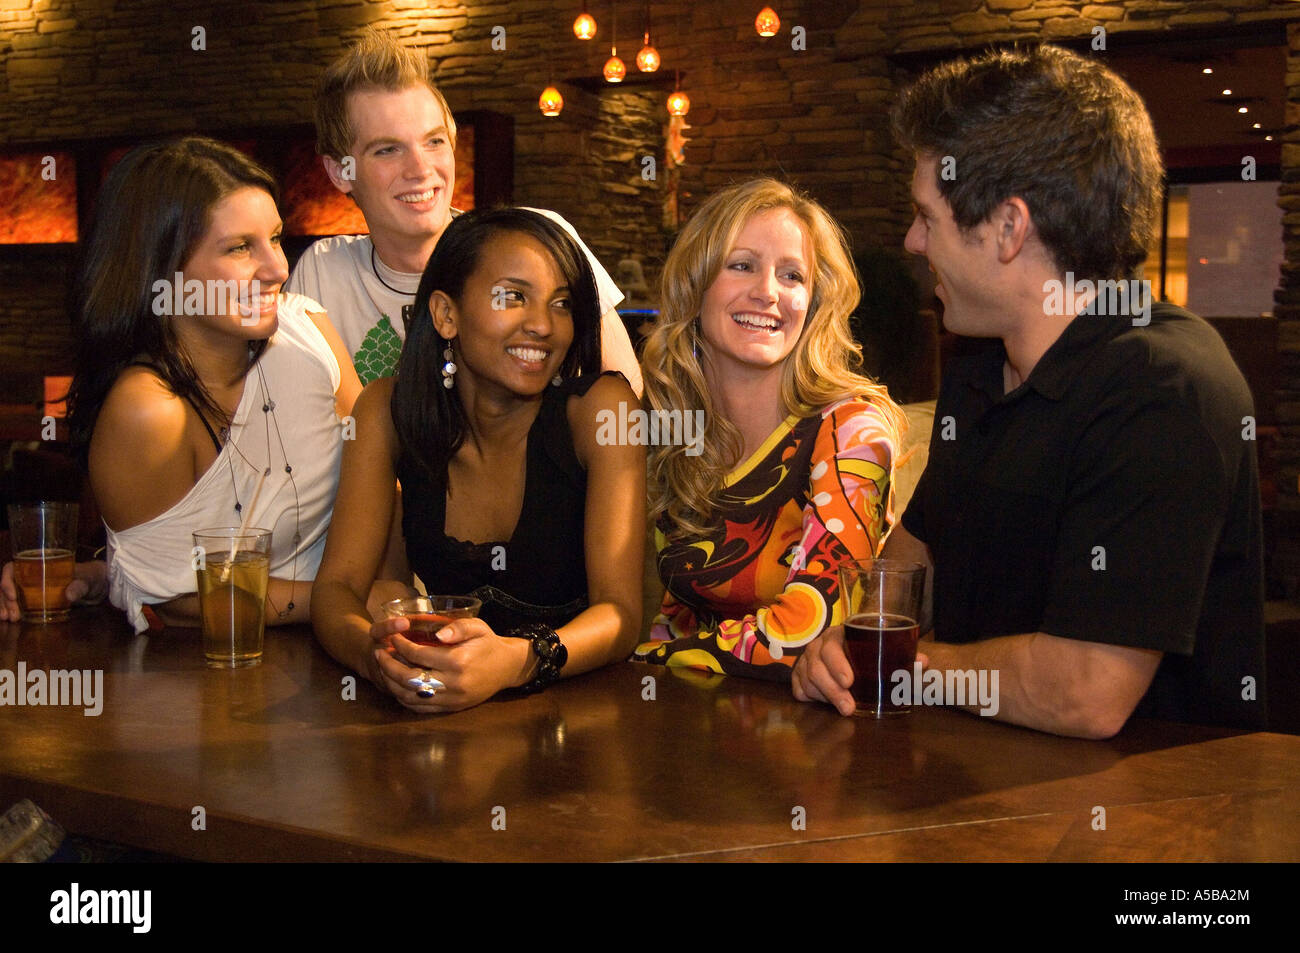 Friends Alamy - Photo At Stock Socializing The 11258491 Five Party Of Pub